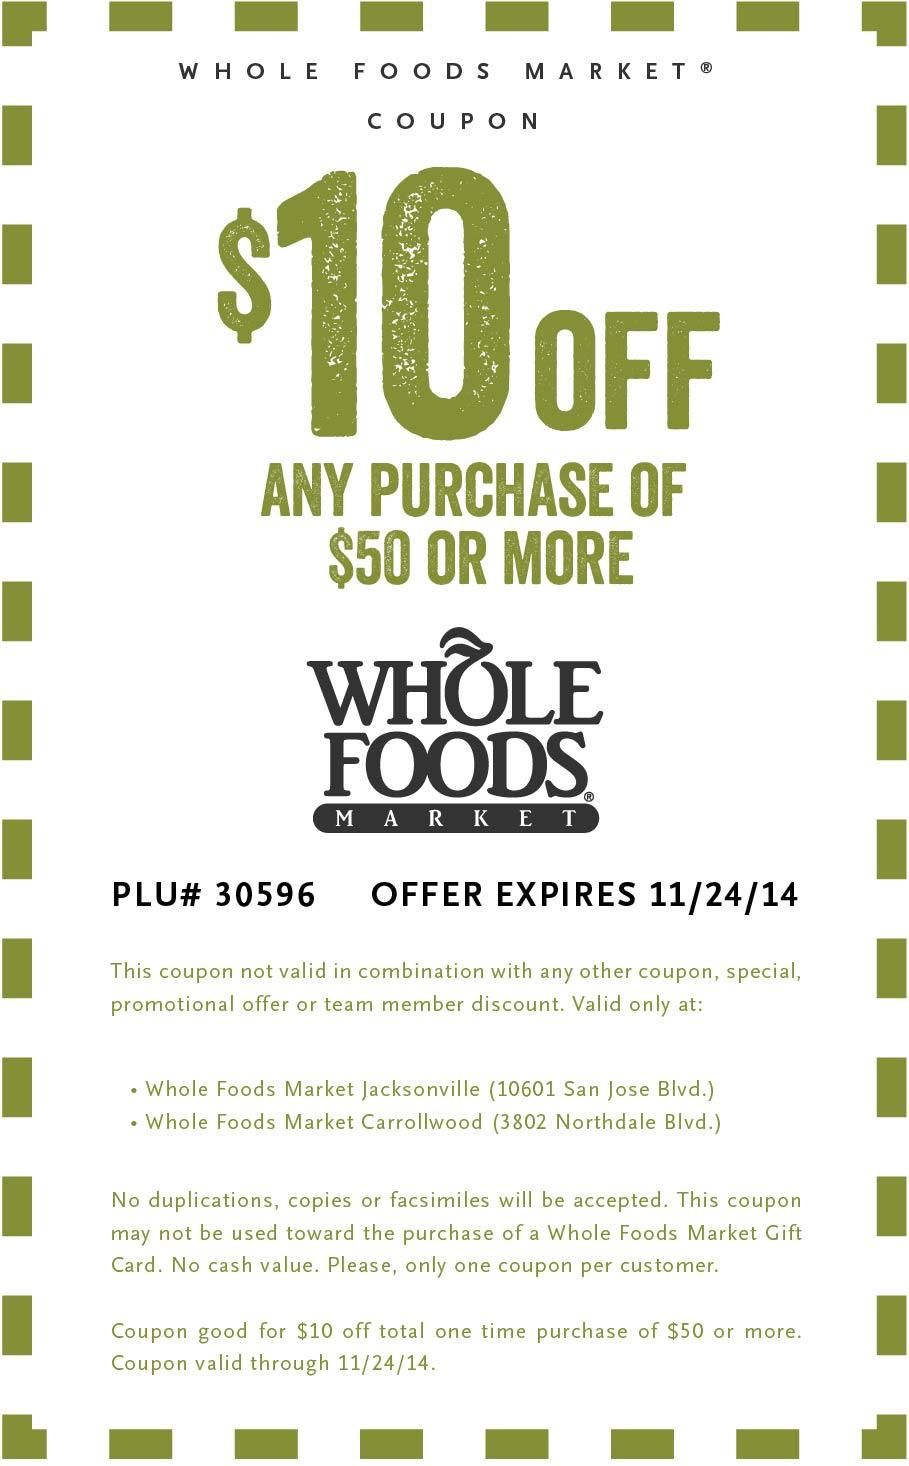 photo about Whole Foods Printable Coupons titled Carrollwood One of a kind Supply Slender Nutritious MAMA Complete foodstuff